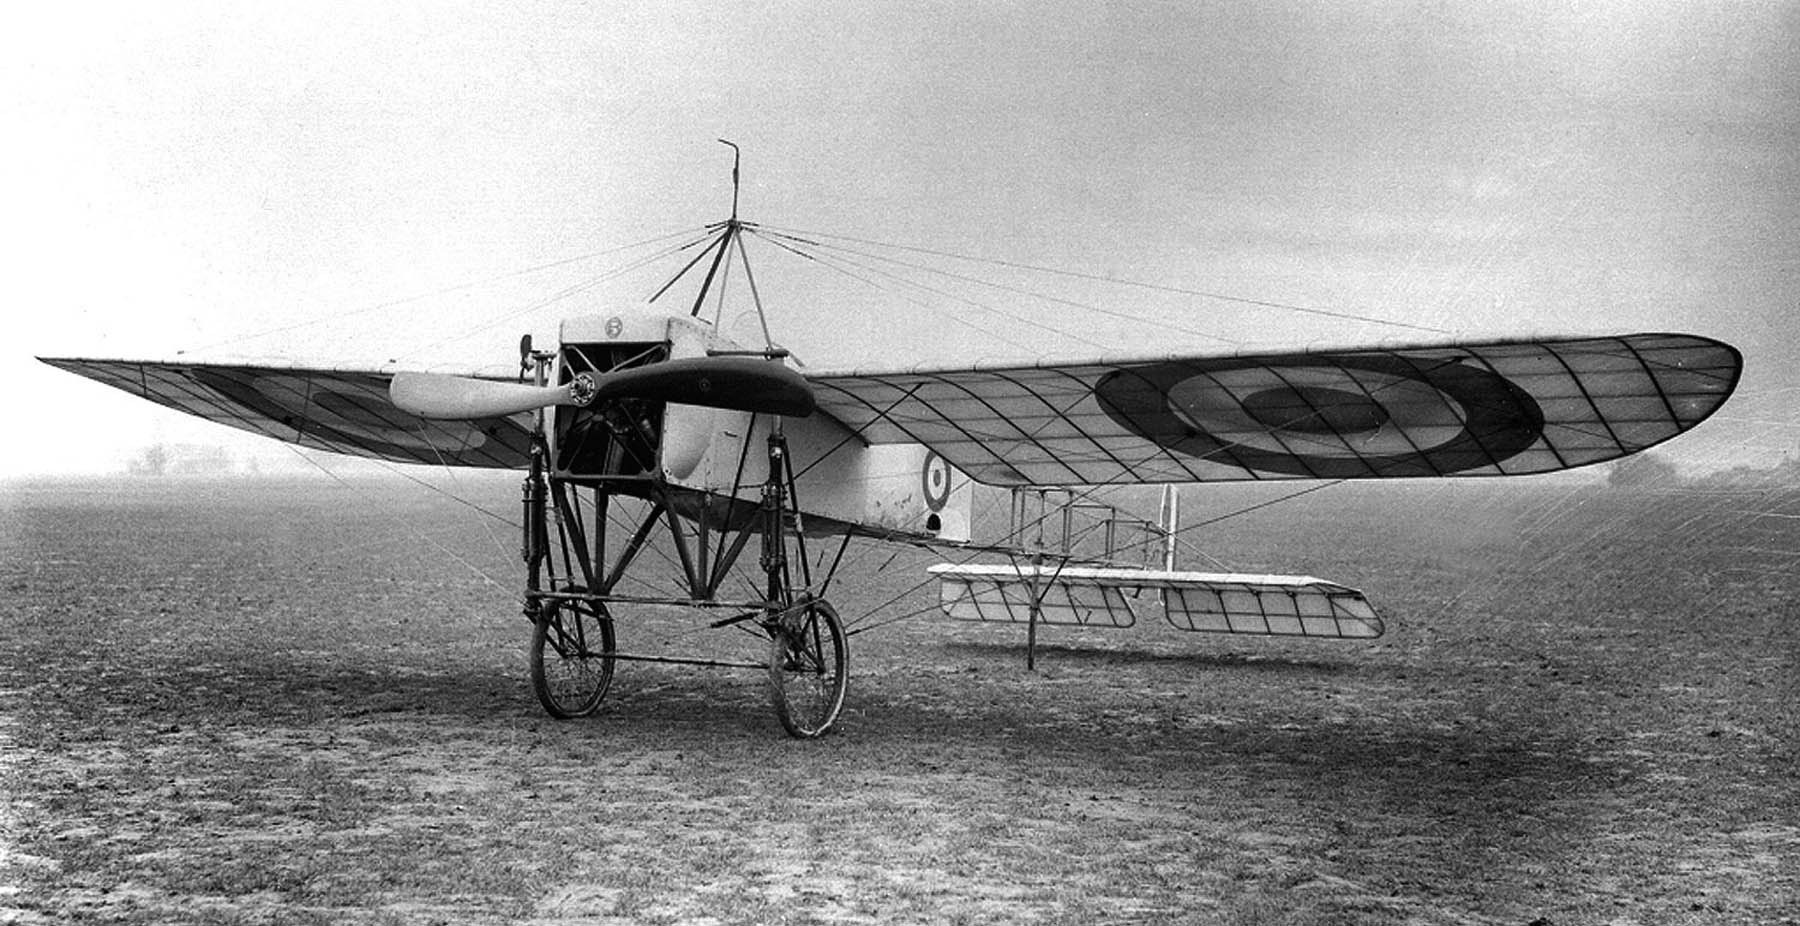 Blériot XI with Royal Flying Corps (UK) markings during World War I.